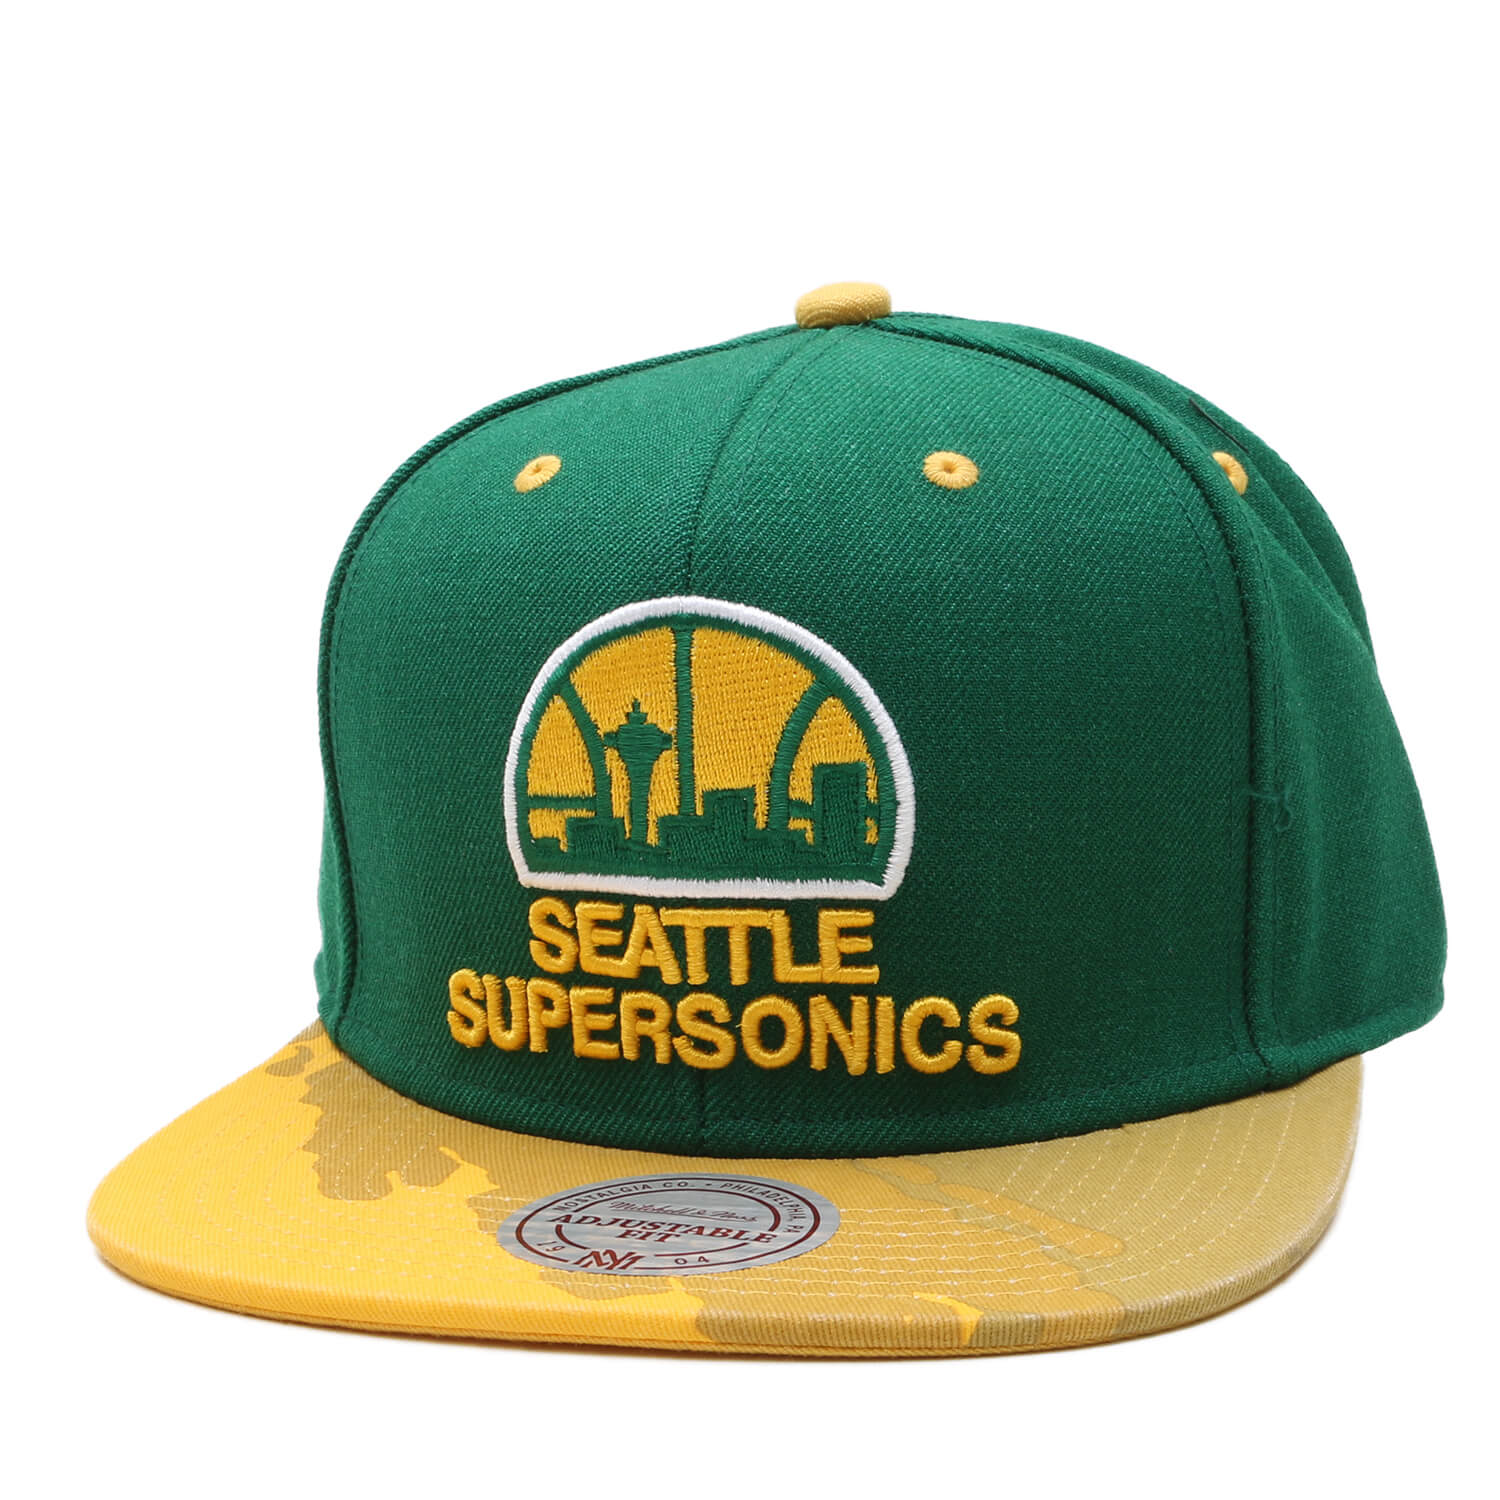 Boné Mitchell & Ness Snapback Seattle Supersonics Verde / Amarelo